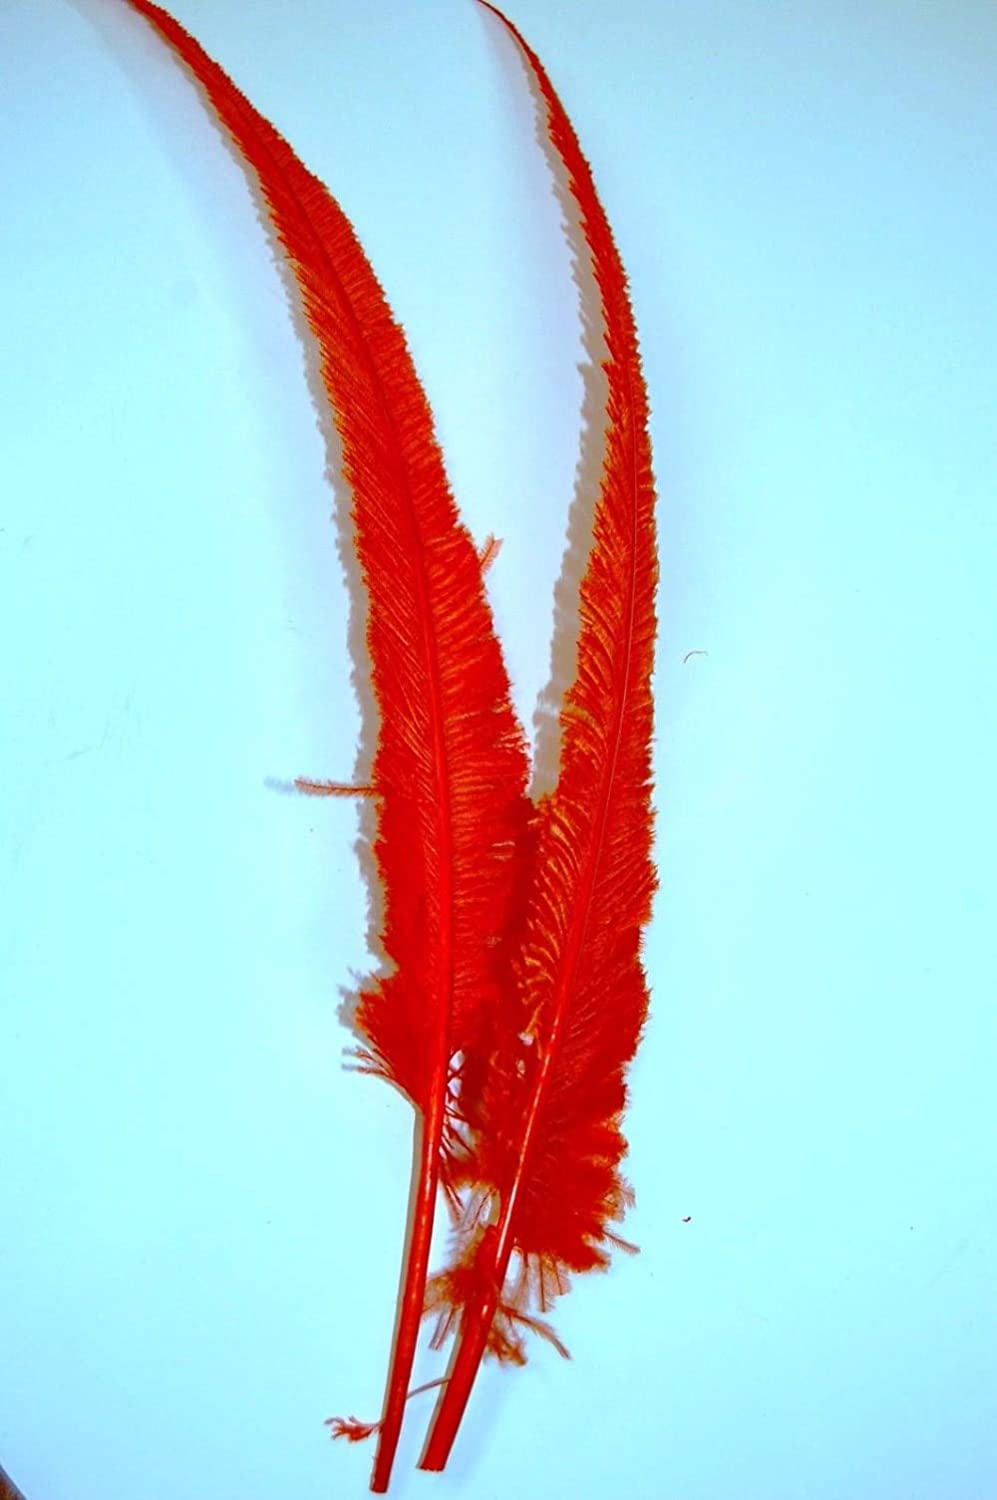 Max 44% OFF Xucus Wholesale Don't miss the campaign 50pcs Red Dyed Nandu Feathers 18-28inch Ostrich